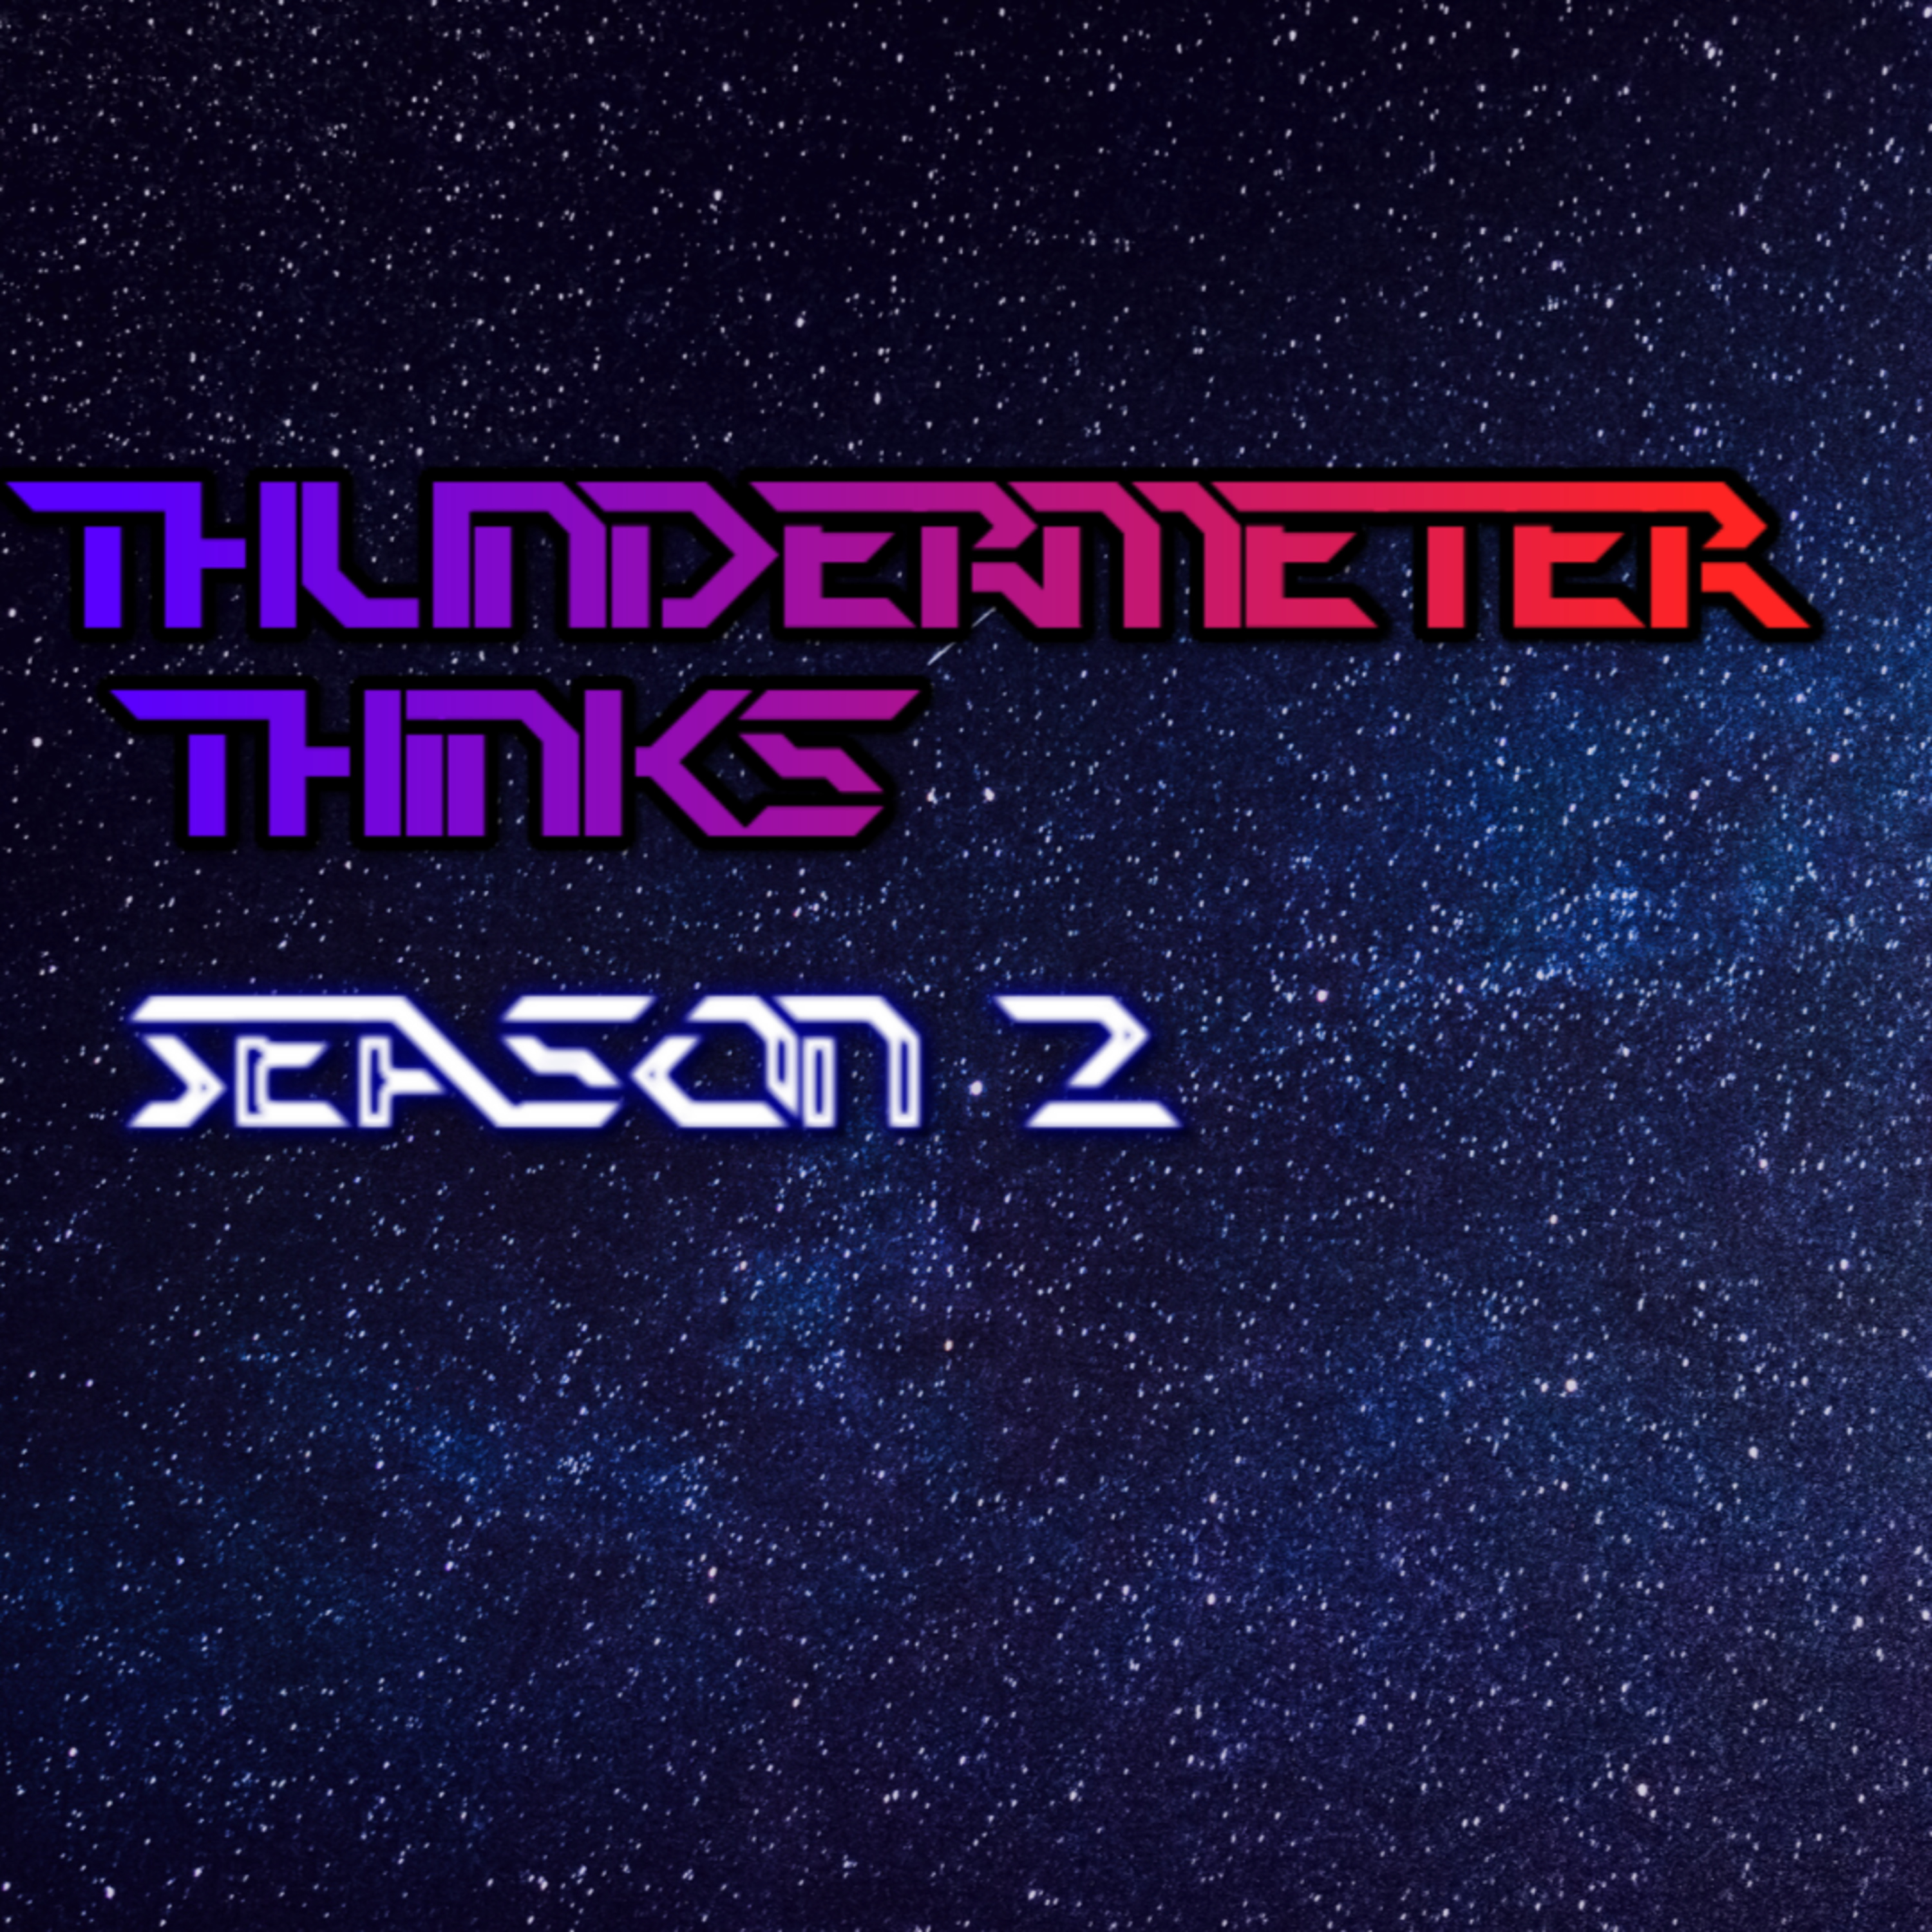 S2 Episode 1 What are some of the best ways to start the New Year?